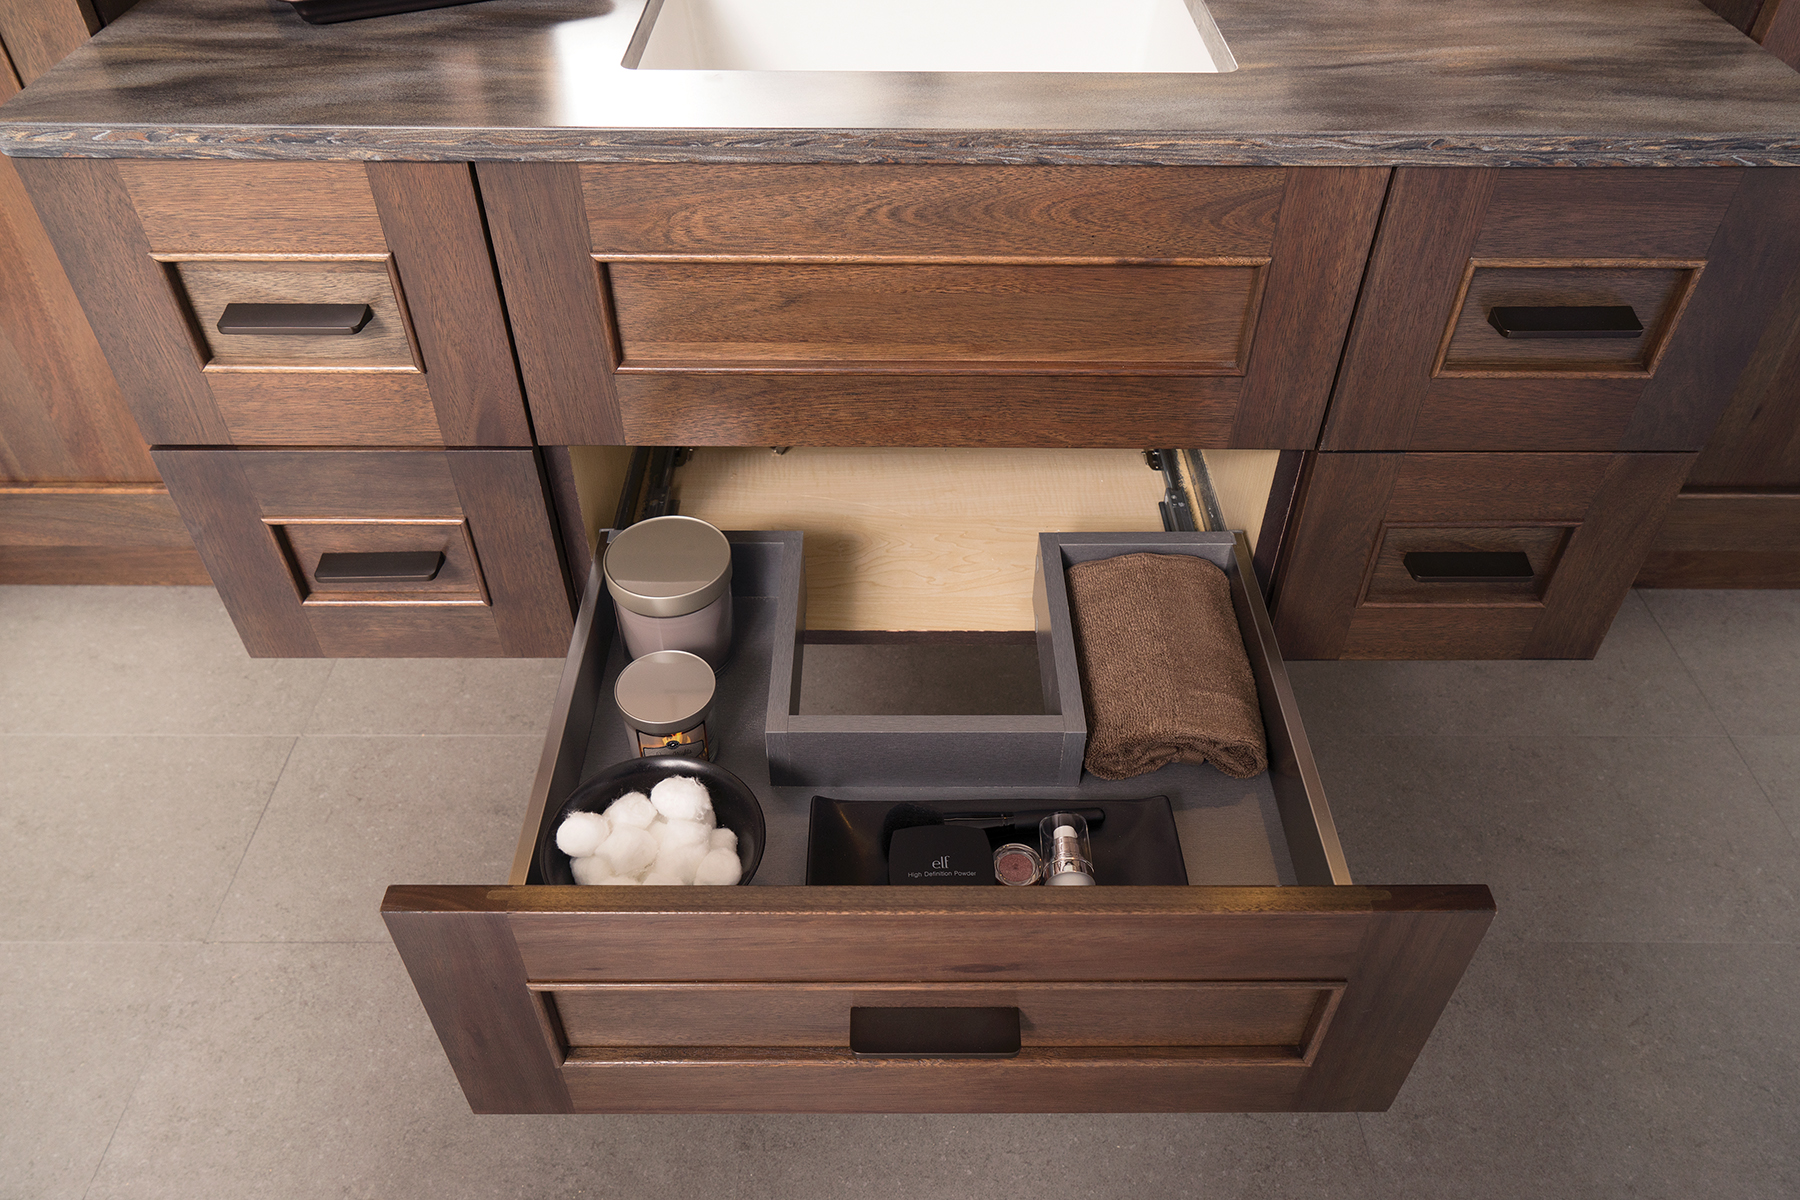 Dura Supreme Cabinetry Plumbing Drawer in Stainless Steel